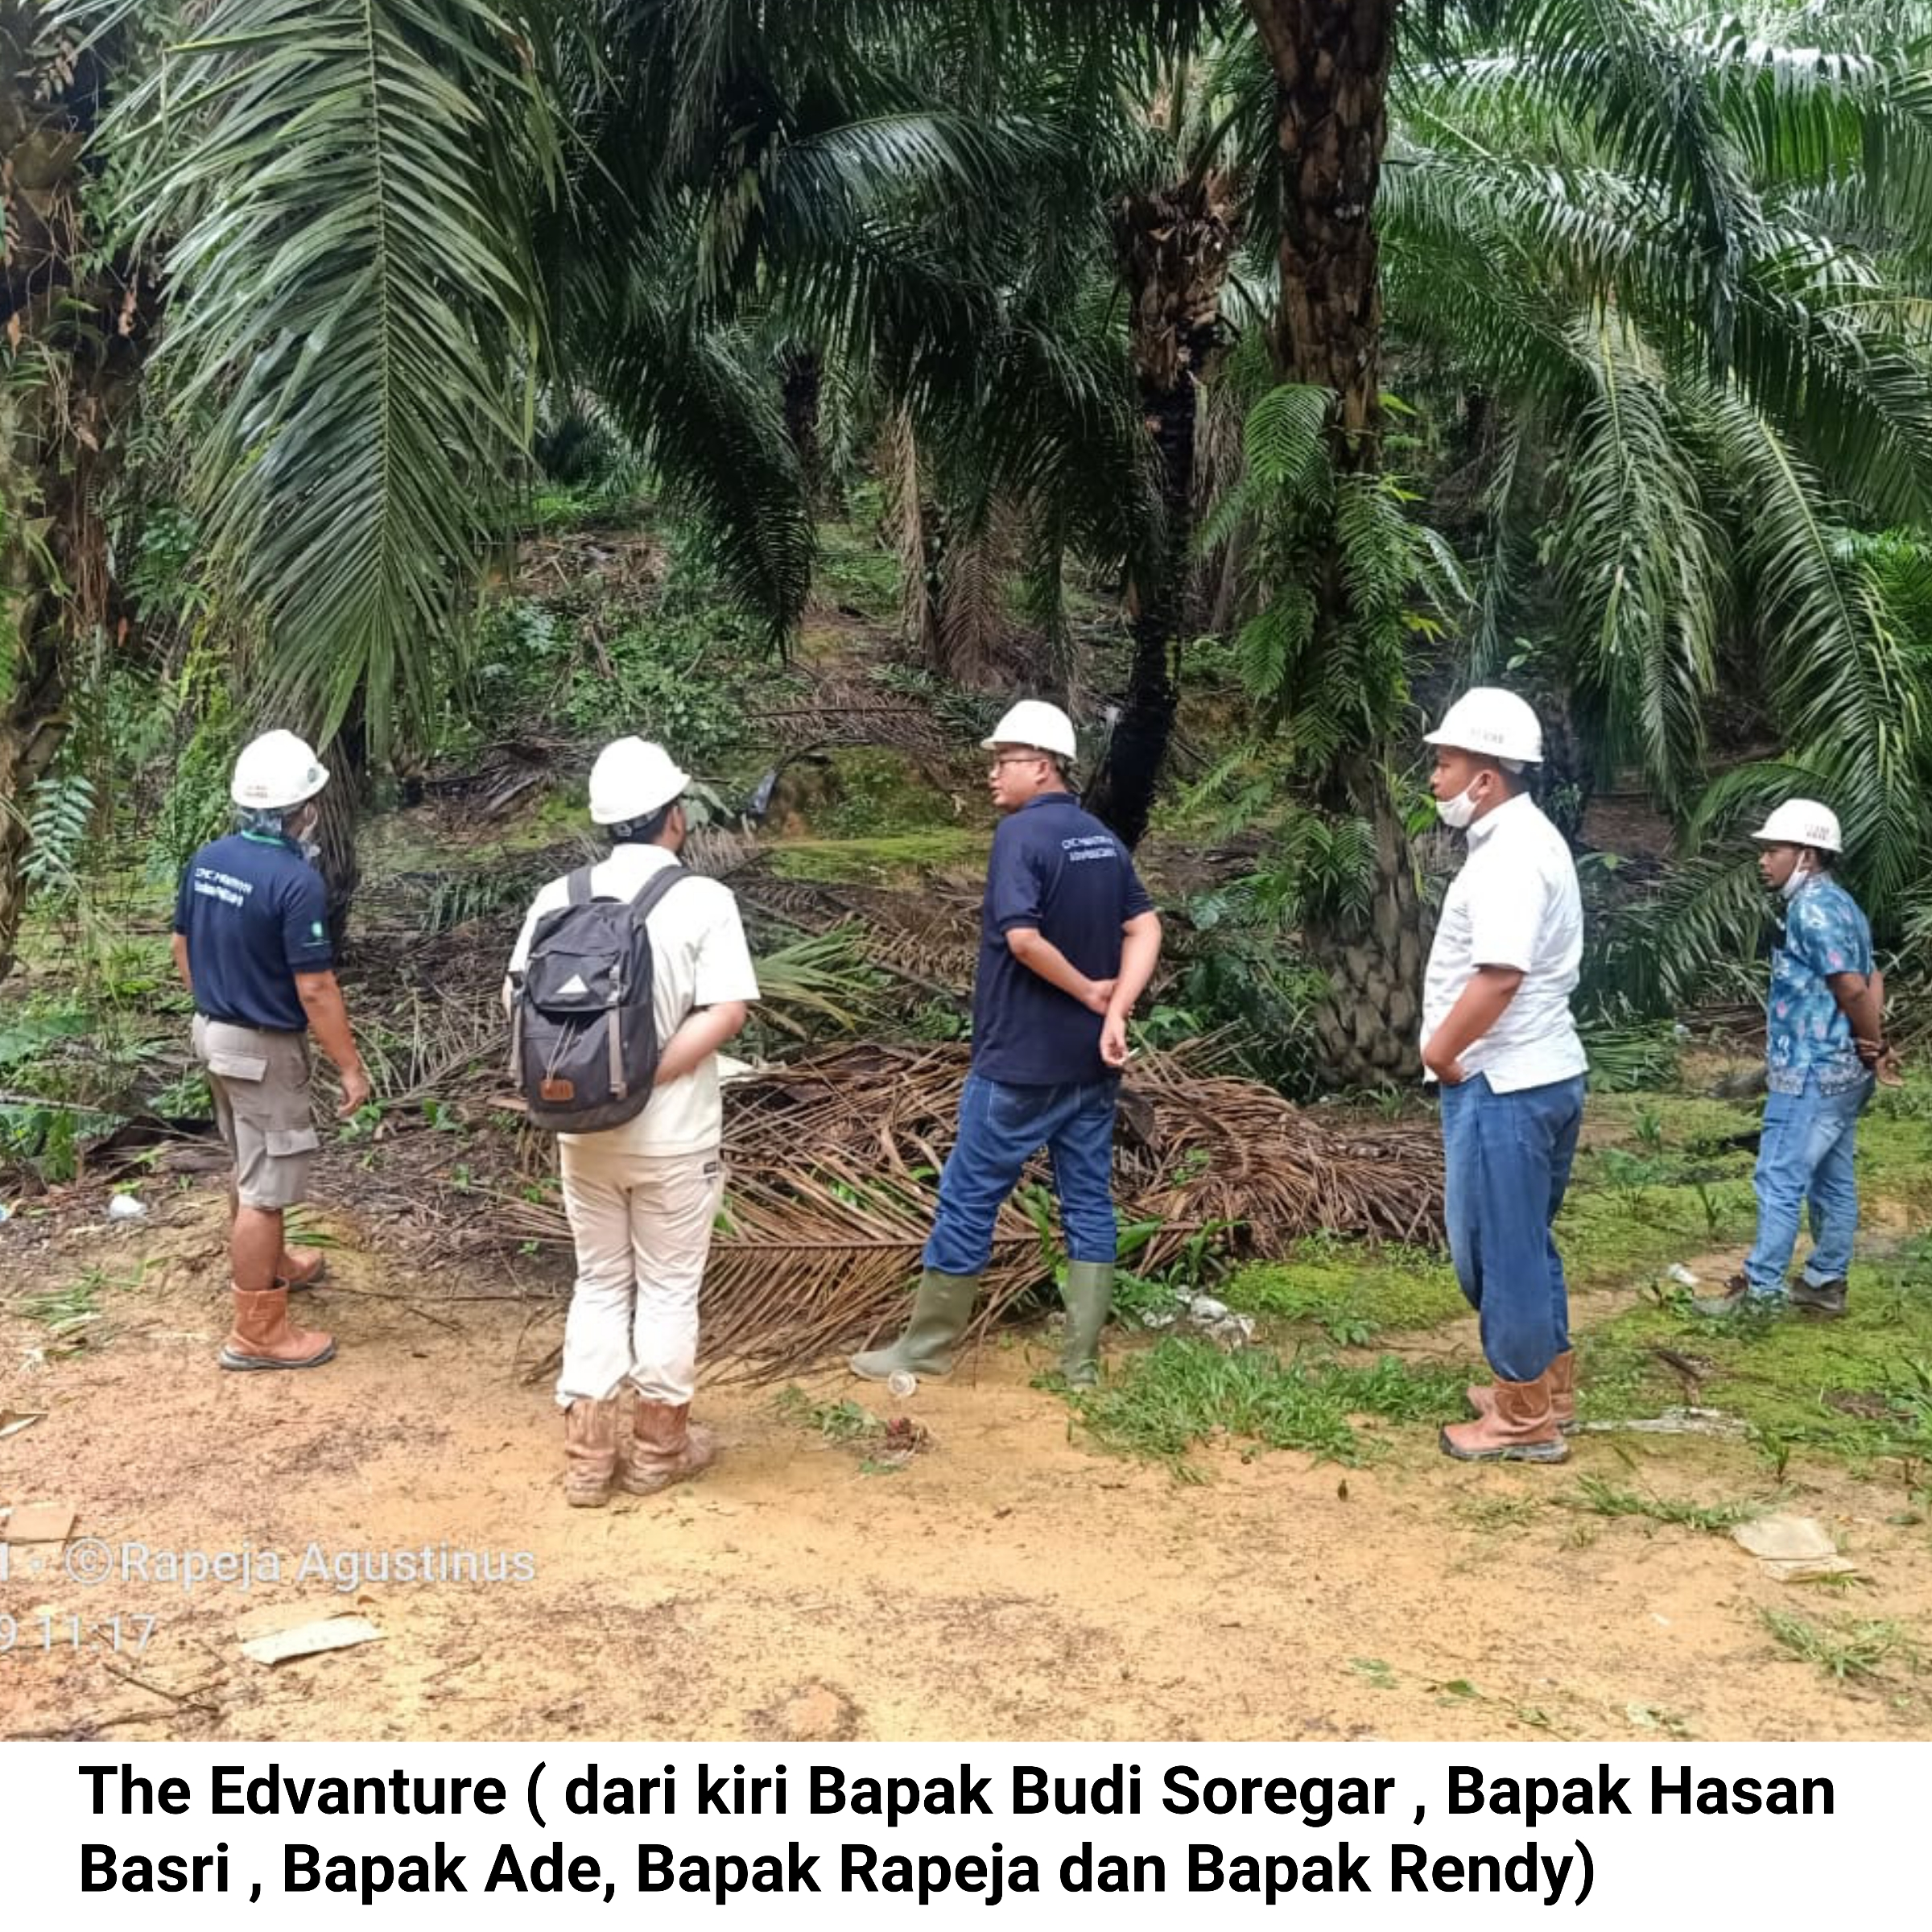 The Advanture Area Controller 1 bersama team ke Hutan BHJE